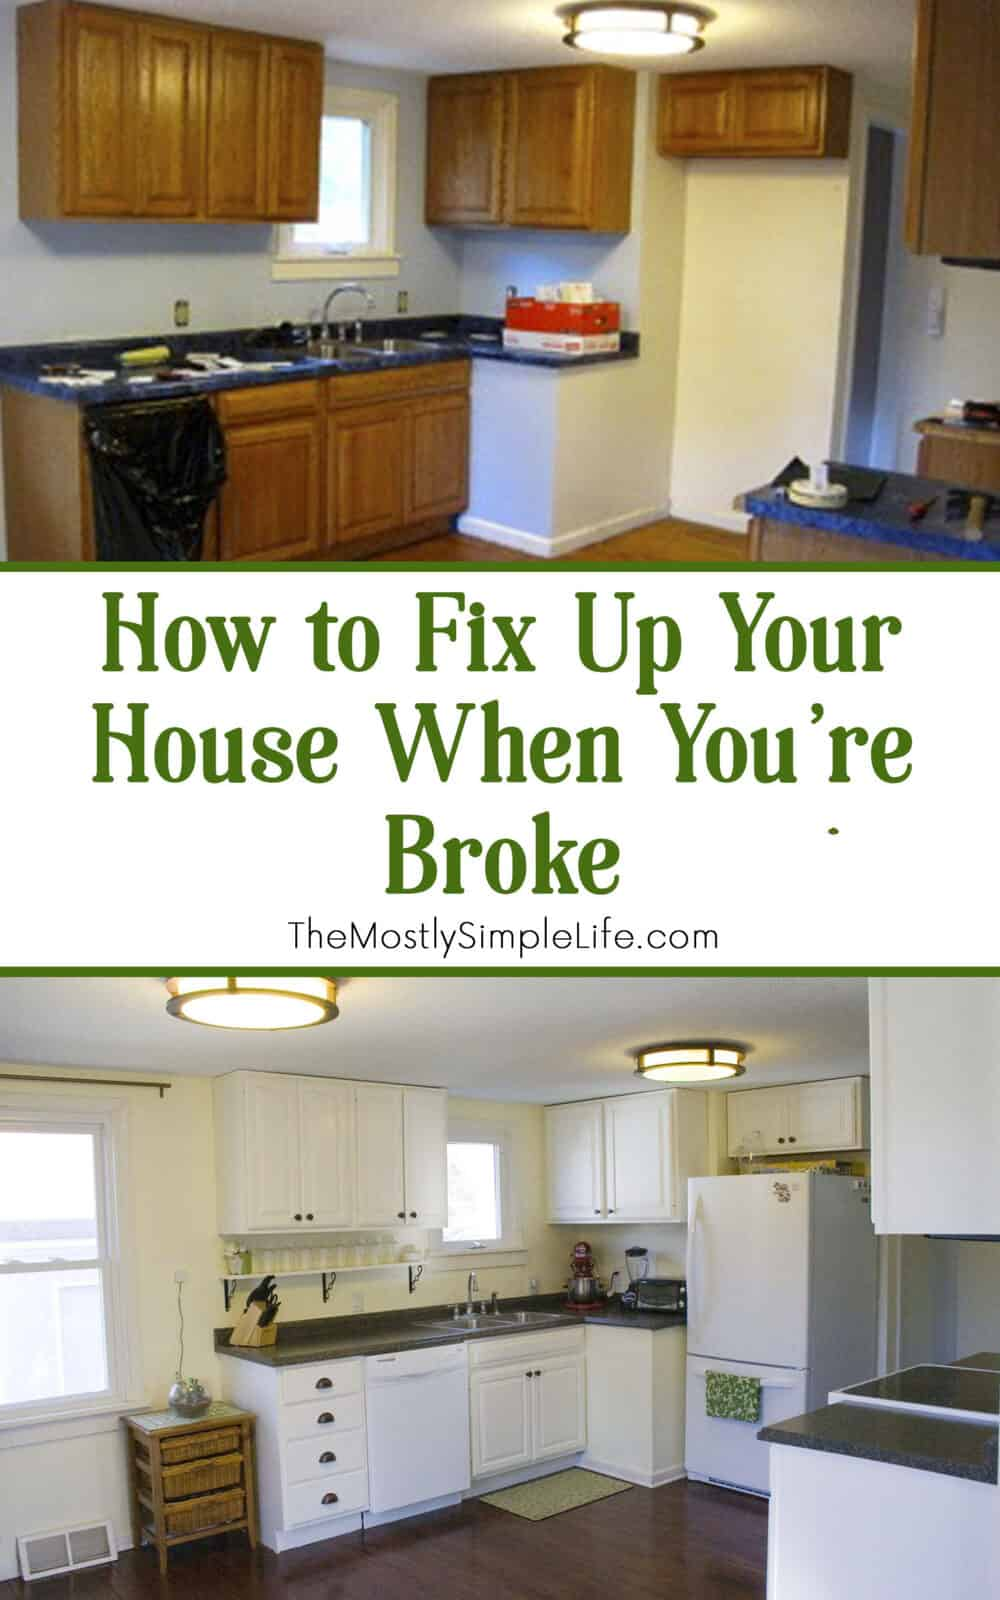 How To Fix Up Your House When You 39 Re Broke The Mostly Simple Life